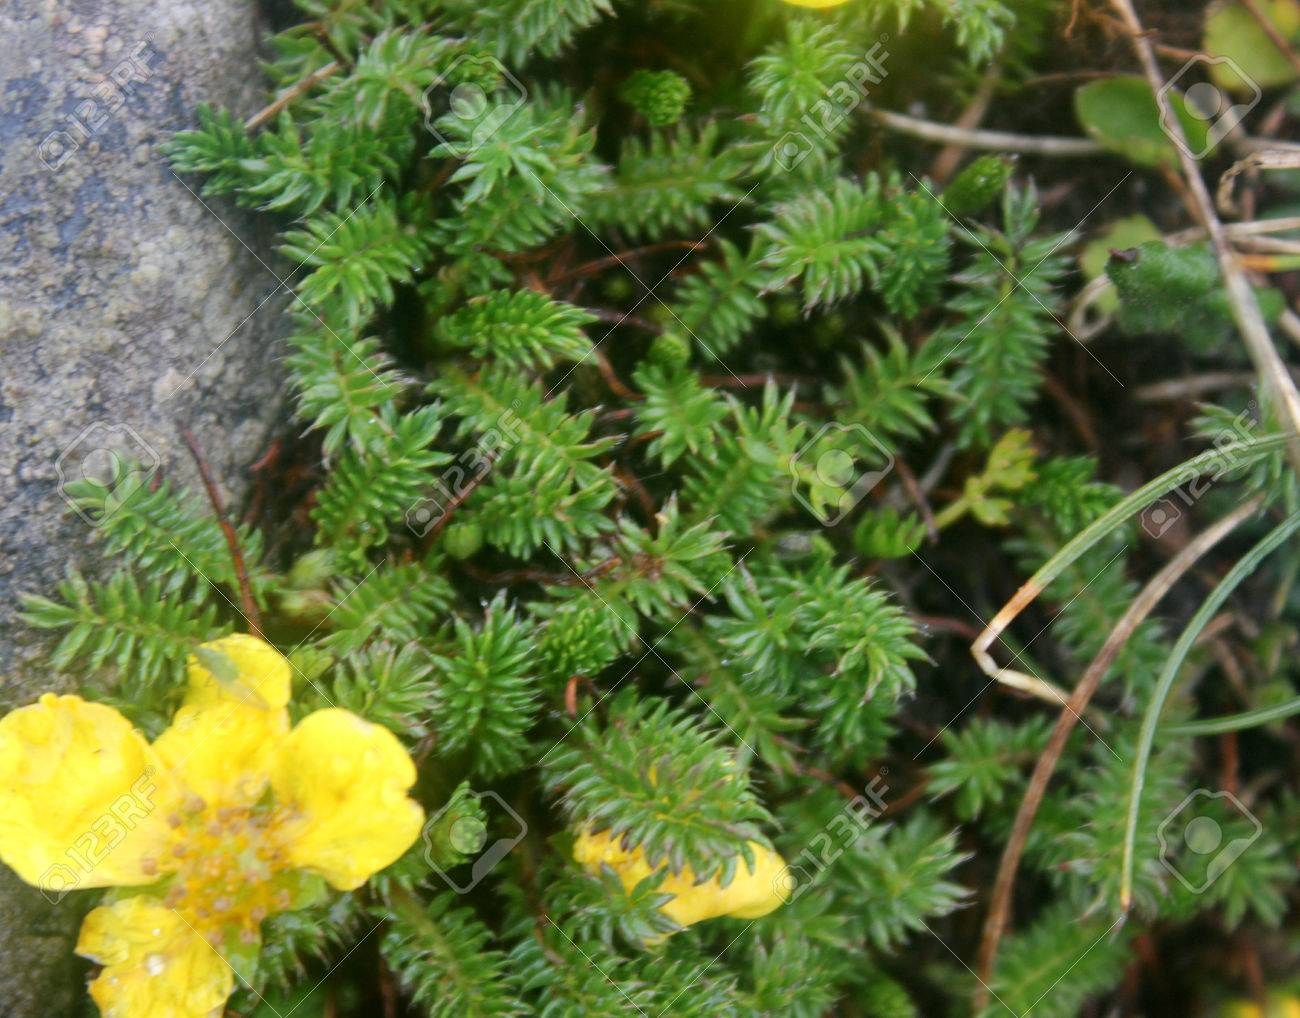 Potentilla microphylla, Tiny leaves Cinquefoil, perennial cushion forming perennial herb with pinnate compound leaves with tiny leaflets and yellow about 15 mm across flowers. - 58153470